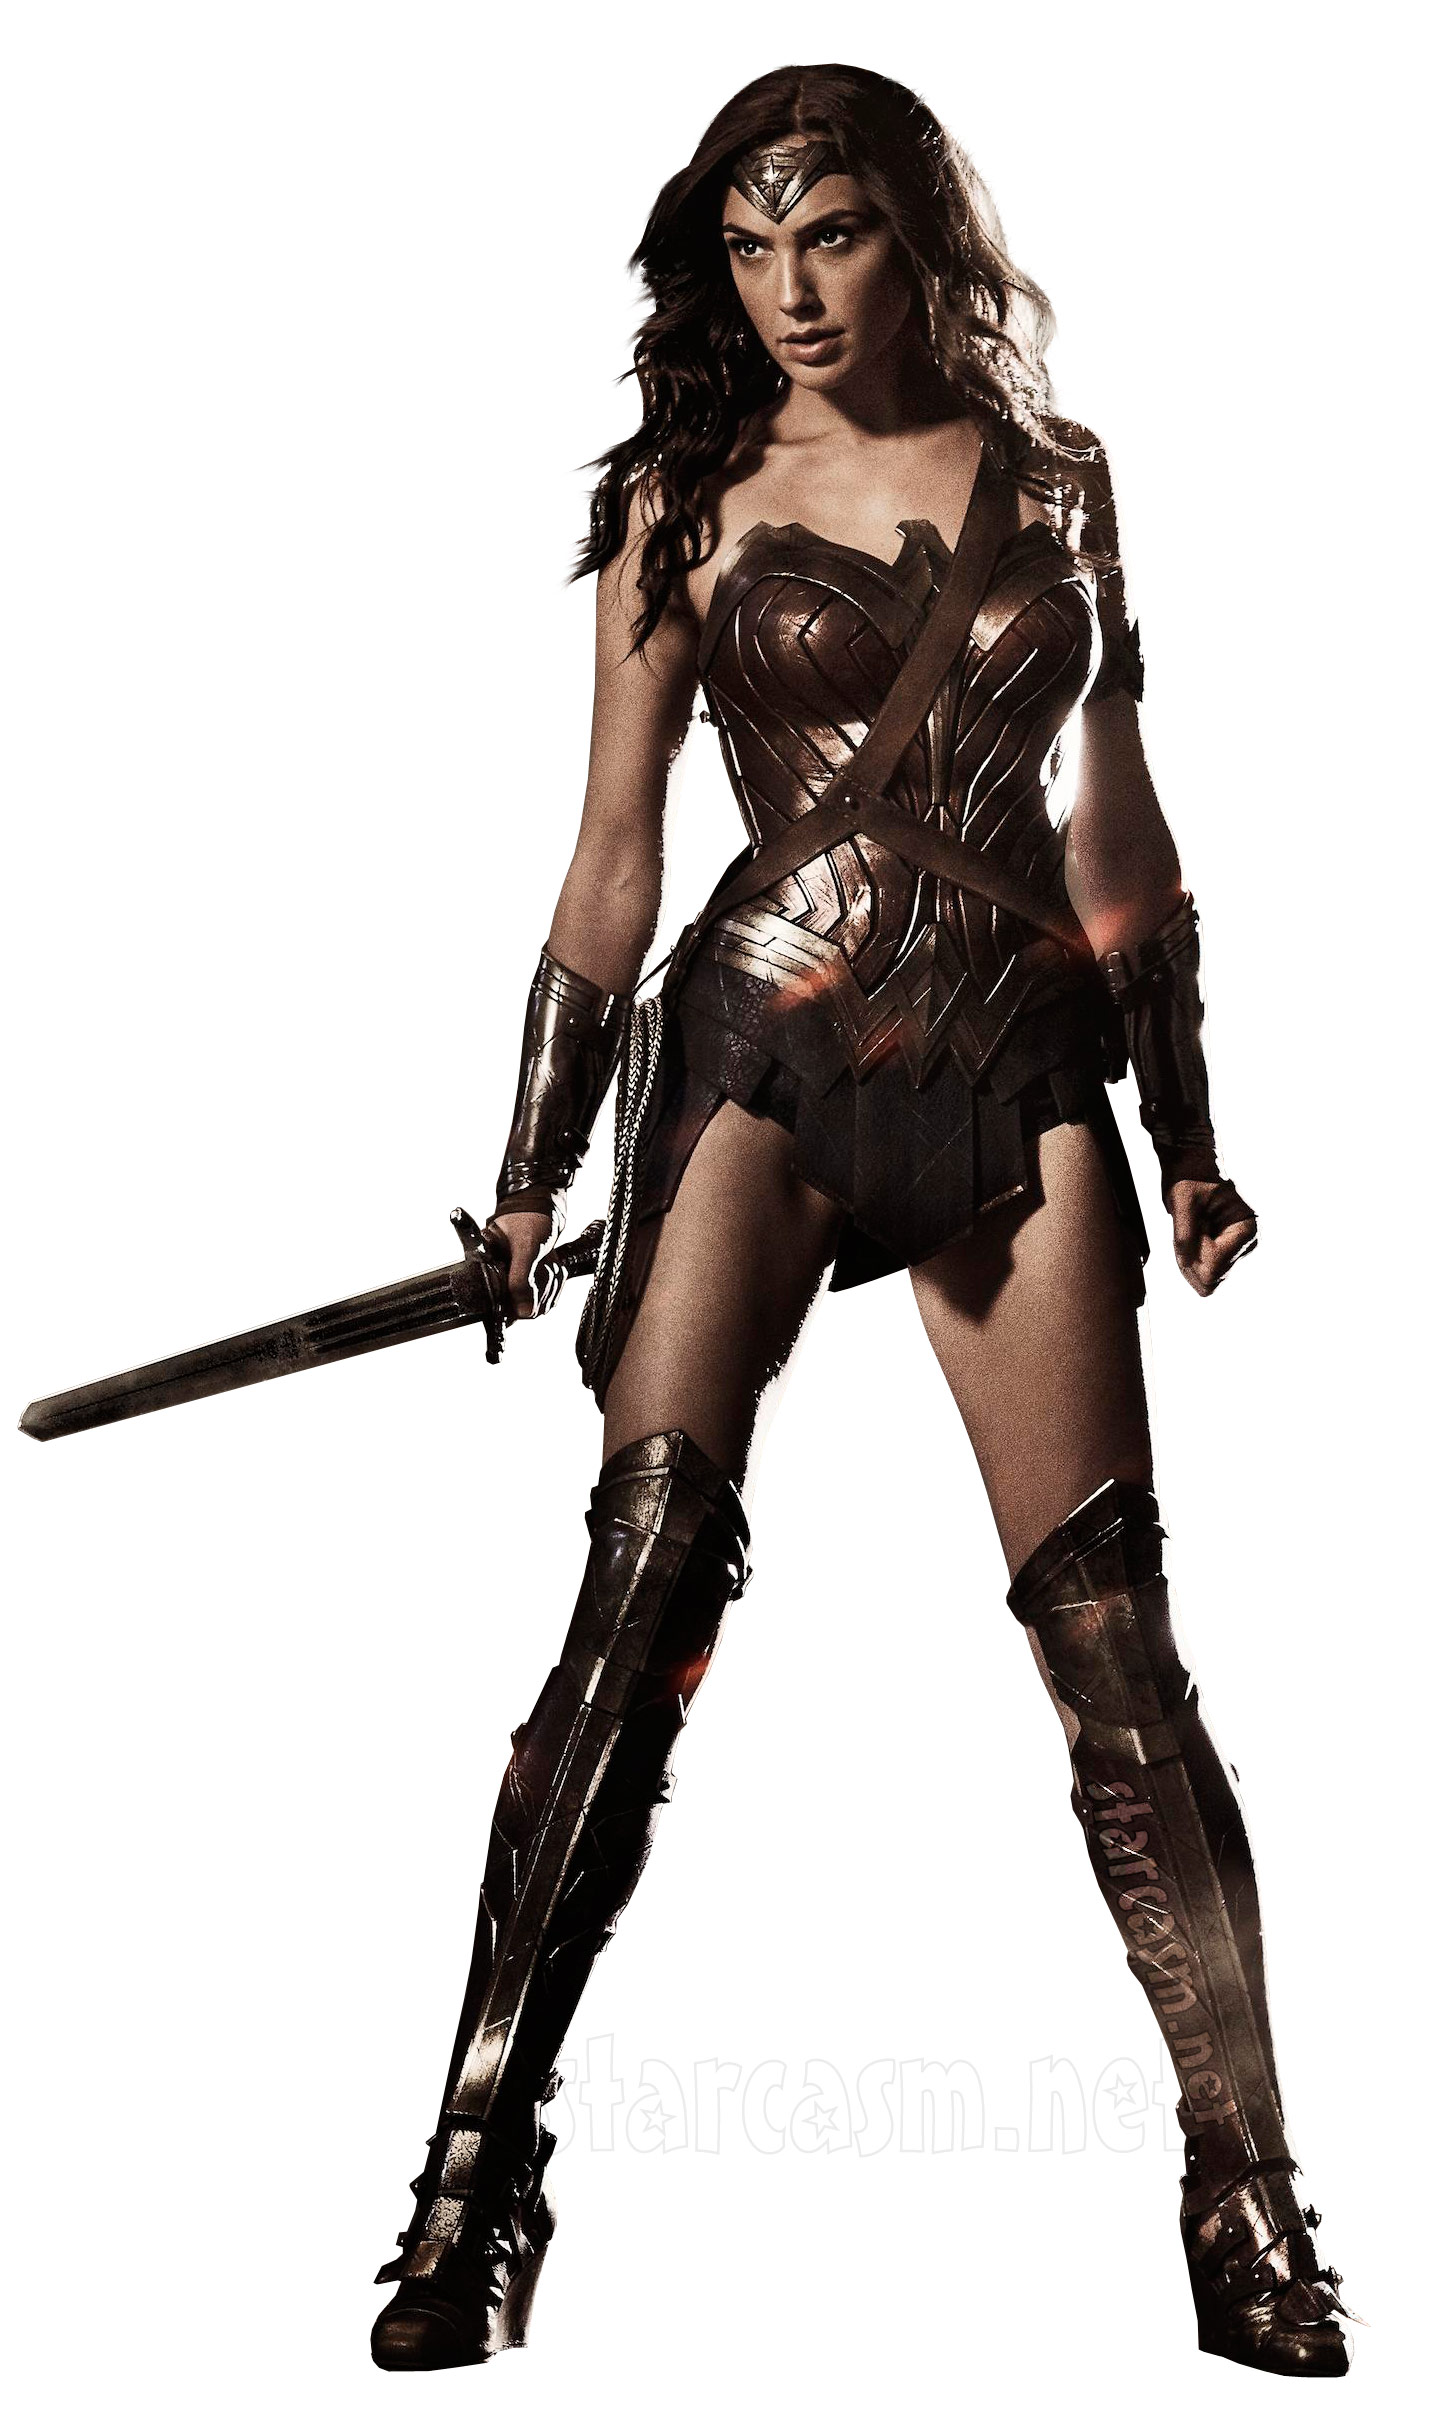 Gal Gadot as Wonder Woman photo revealed at Comic-Con